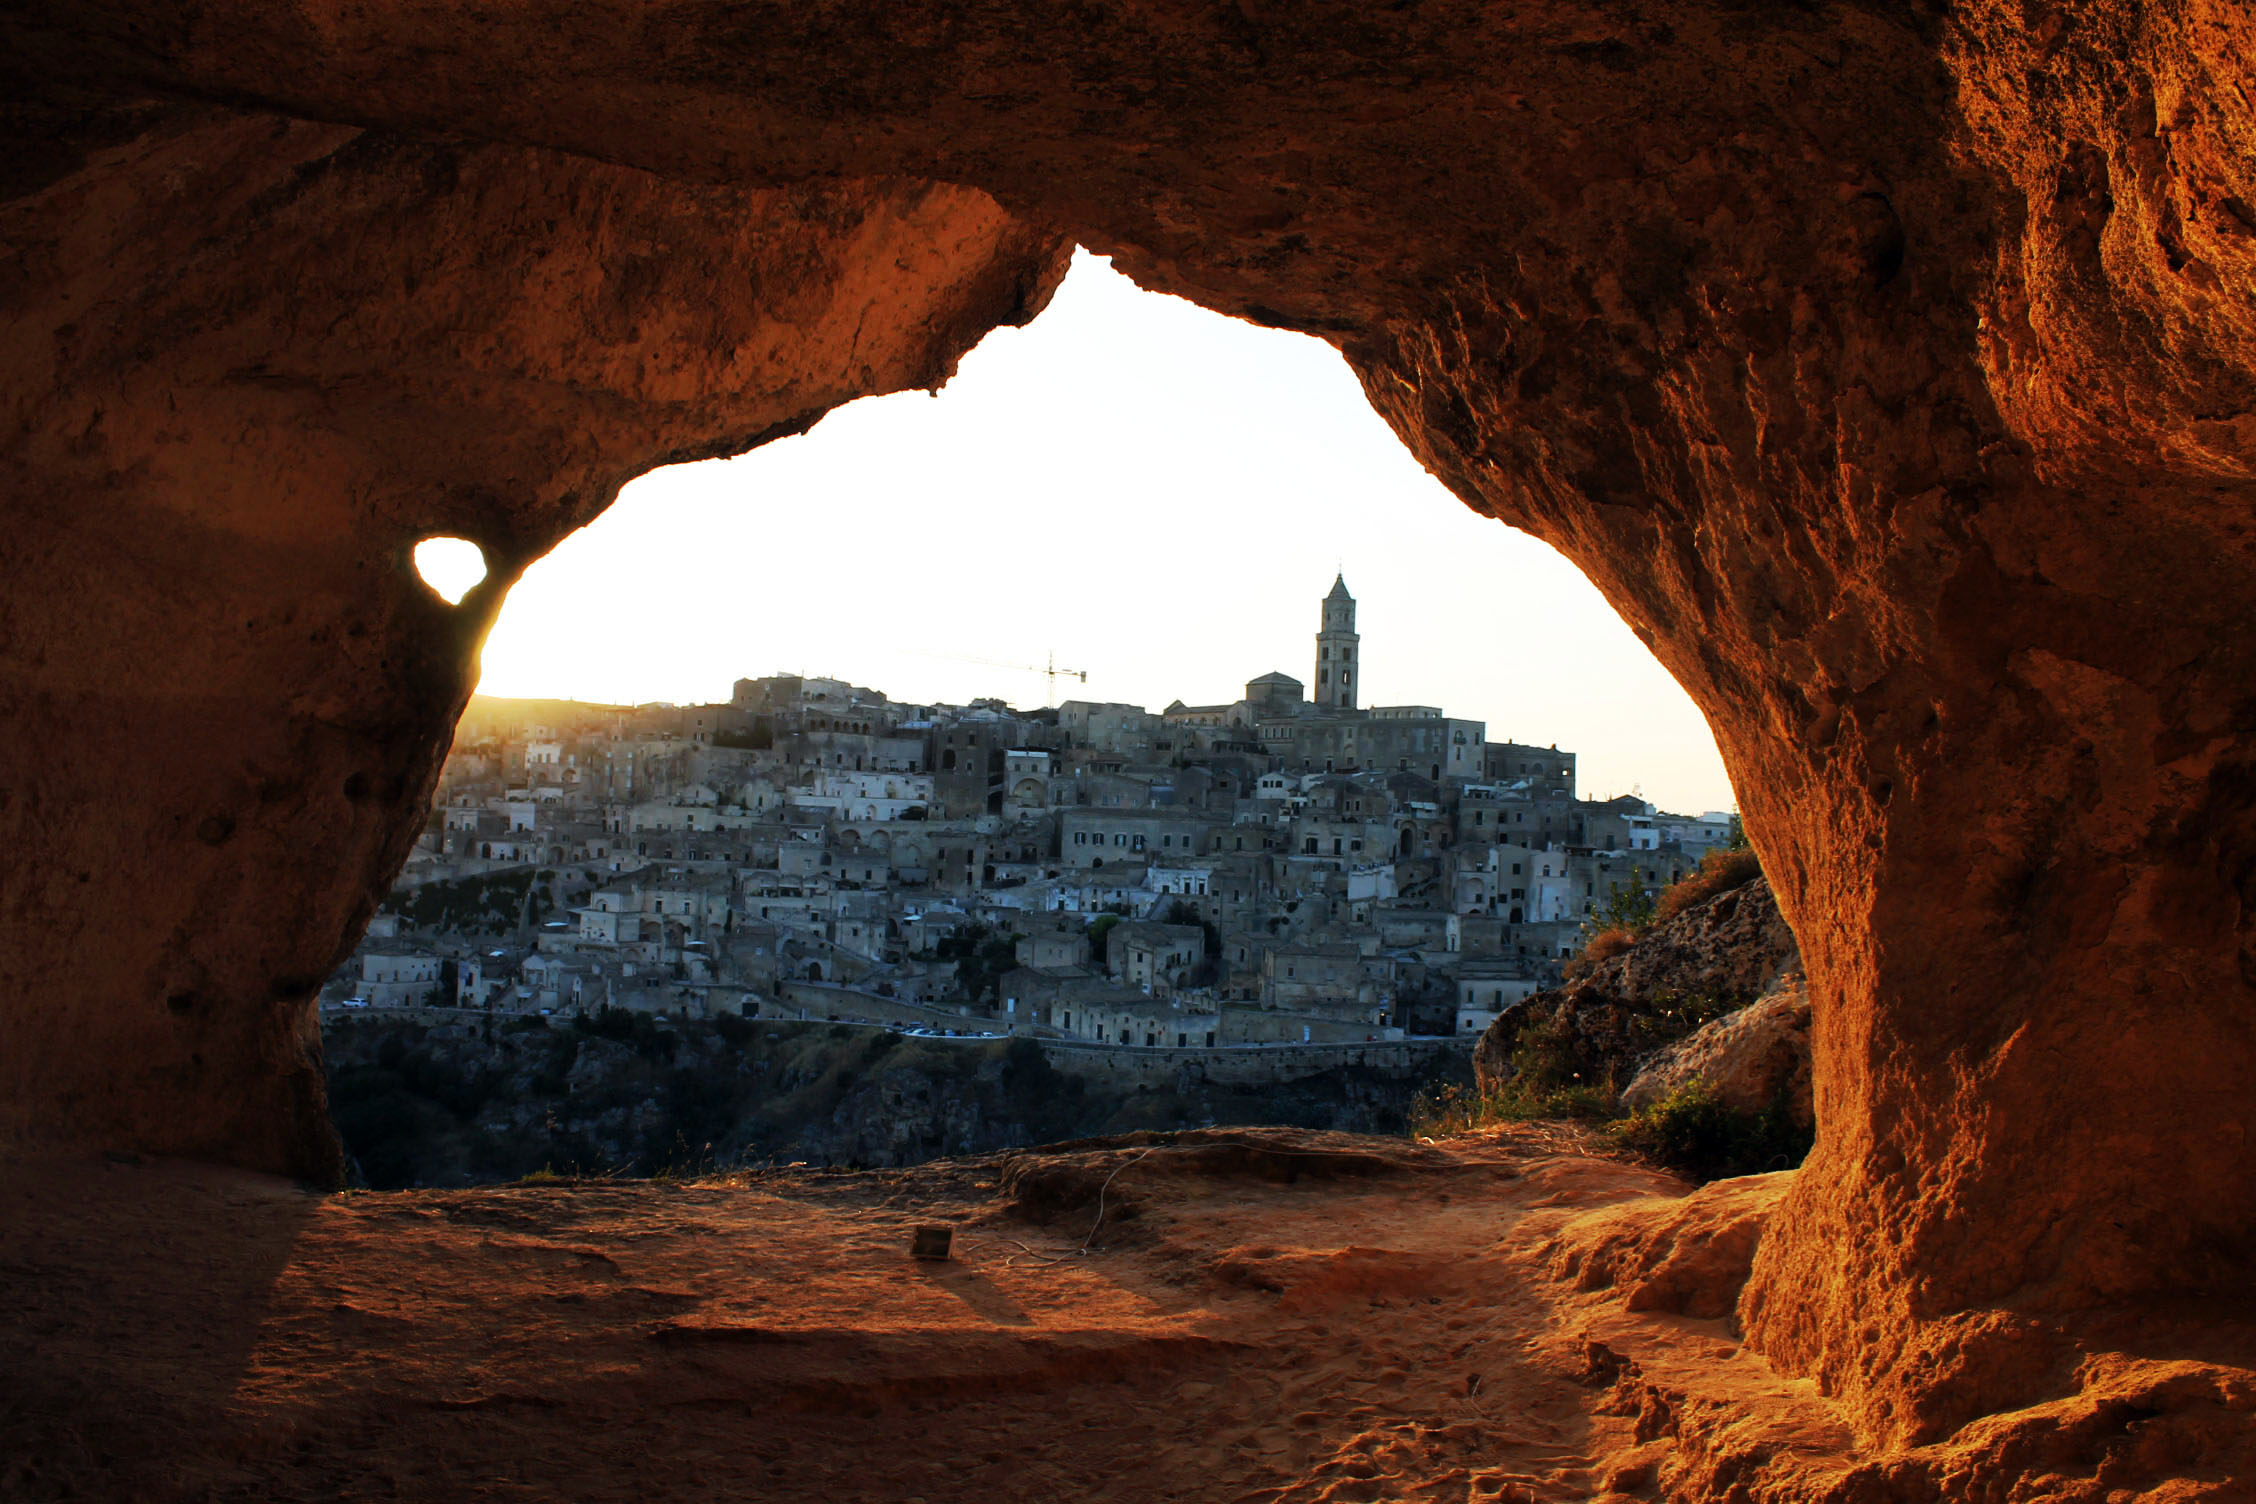 Cave Matera - photo credit: Maryn ve